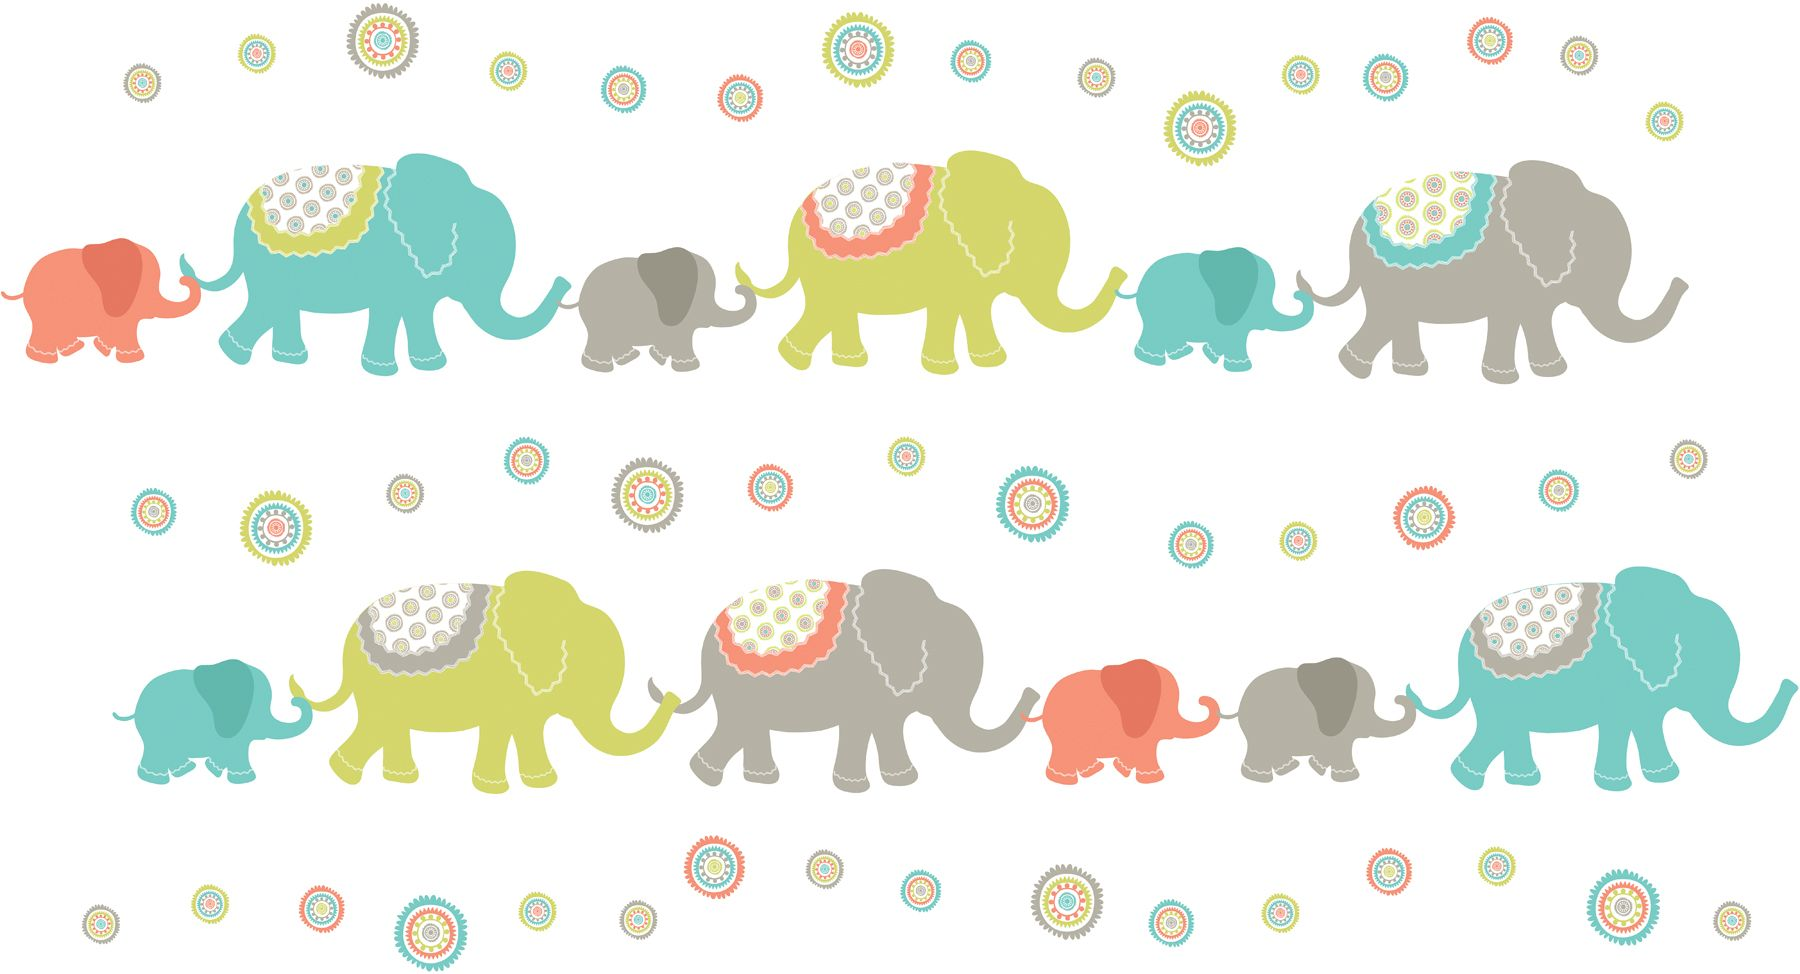 Tag Along Elephant Wall Art Sticker Kit